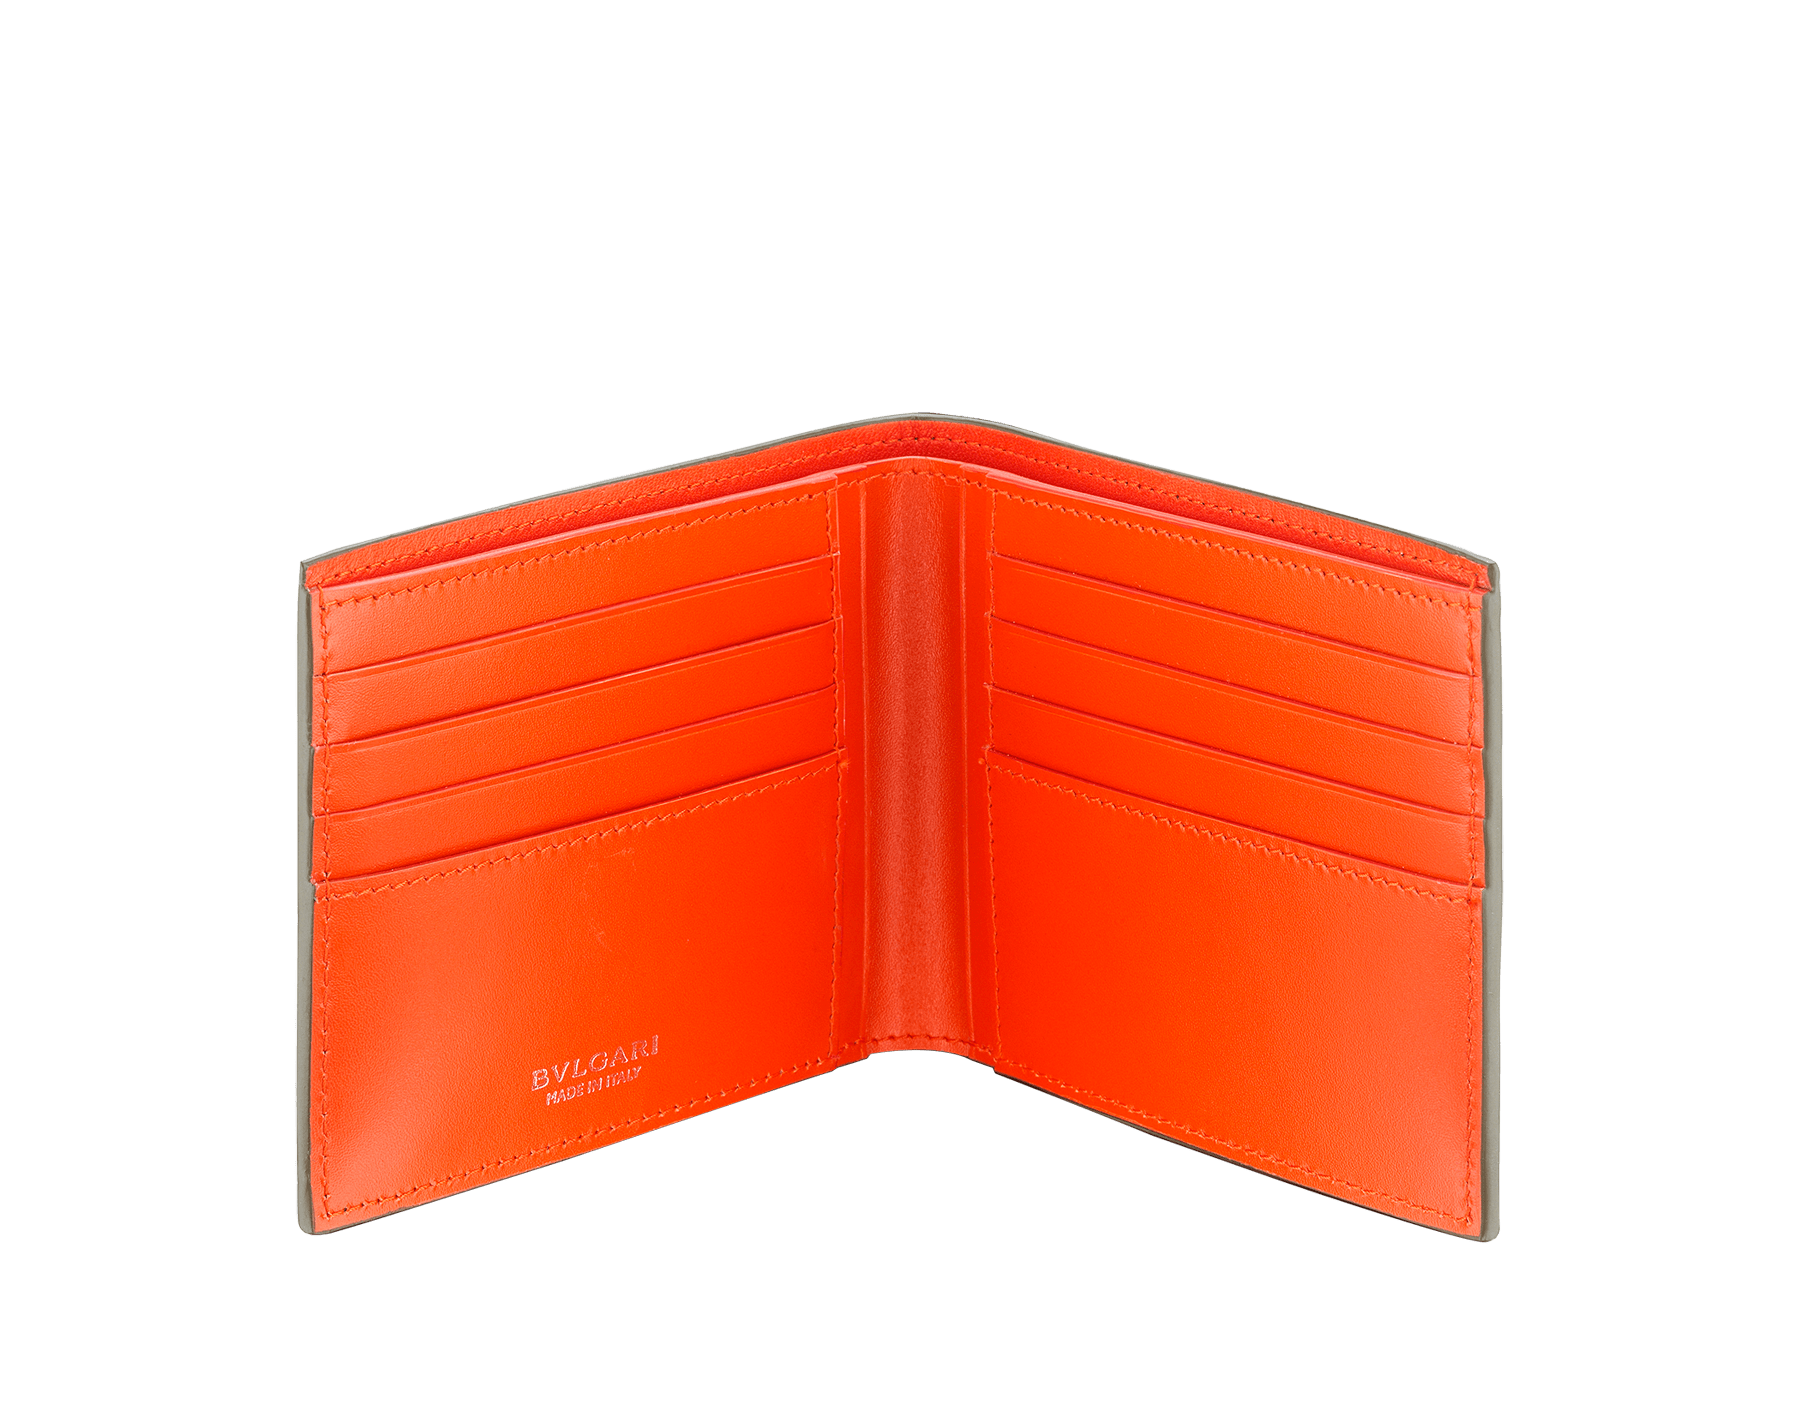 """BVLGARI BVLGARI"" hipster compact wallet in mimetic jade soft full grain calf leather and fire amber calf leather. Iconic logo decoration in palladium plated brass coloured in fire amber enamel. 290077 image 2"